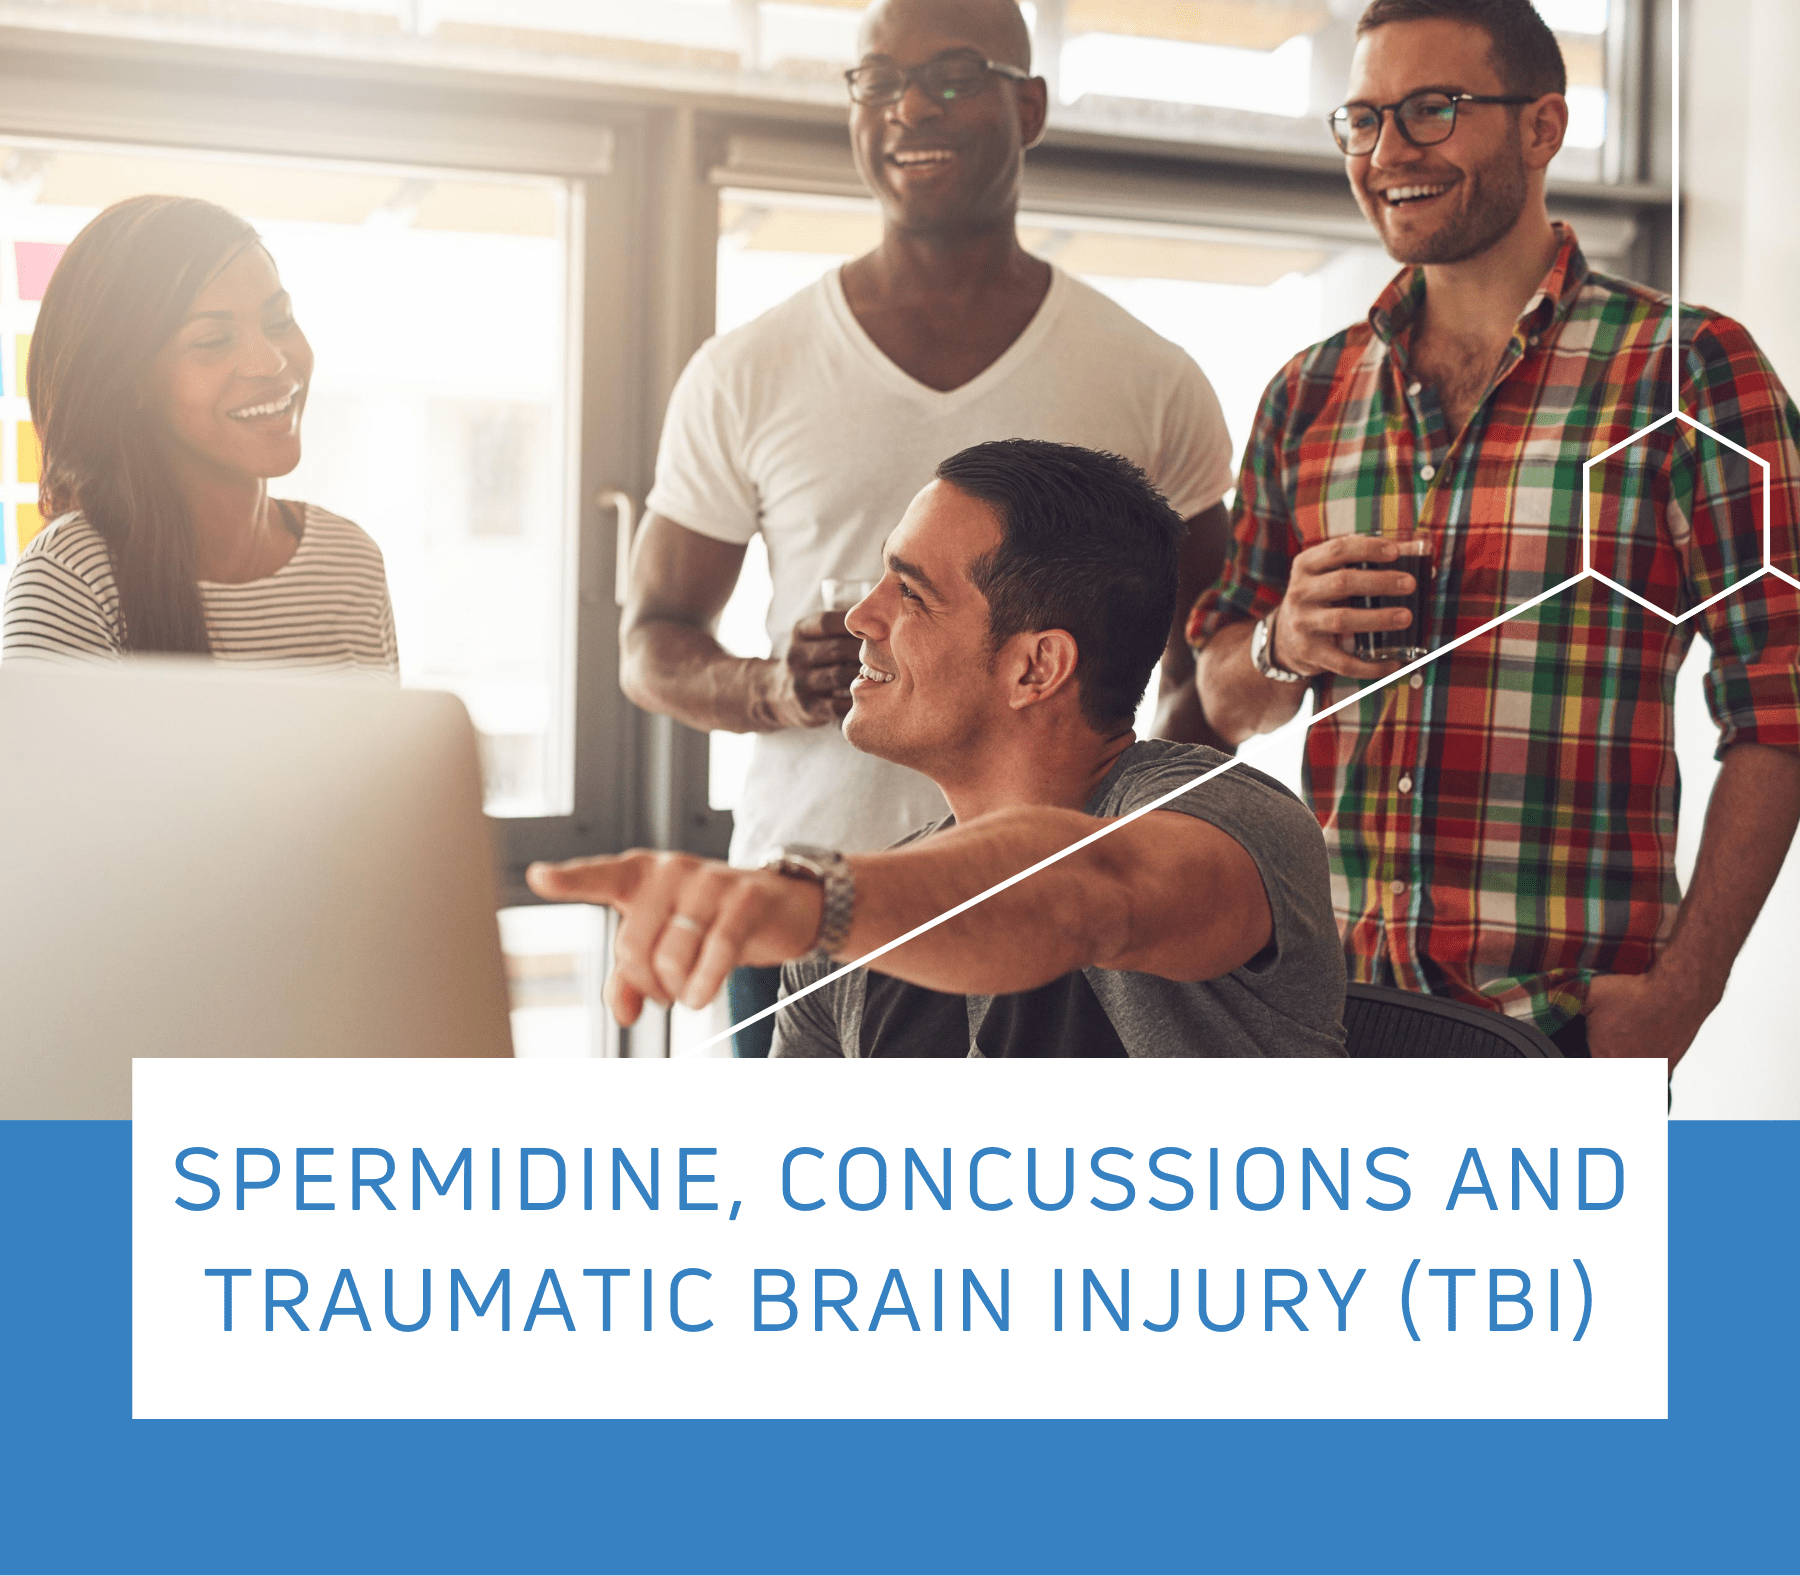 Spermidine, Concussions and Traumatic Brain Injury (TBI)